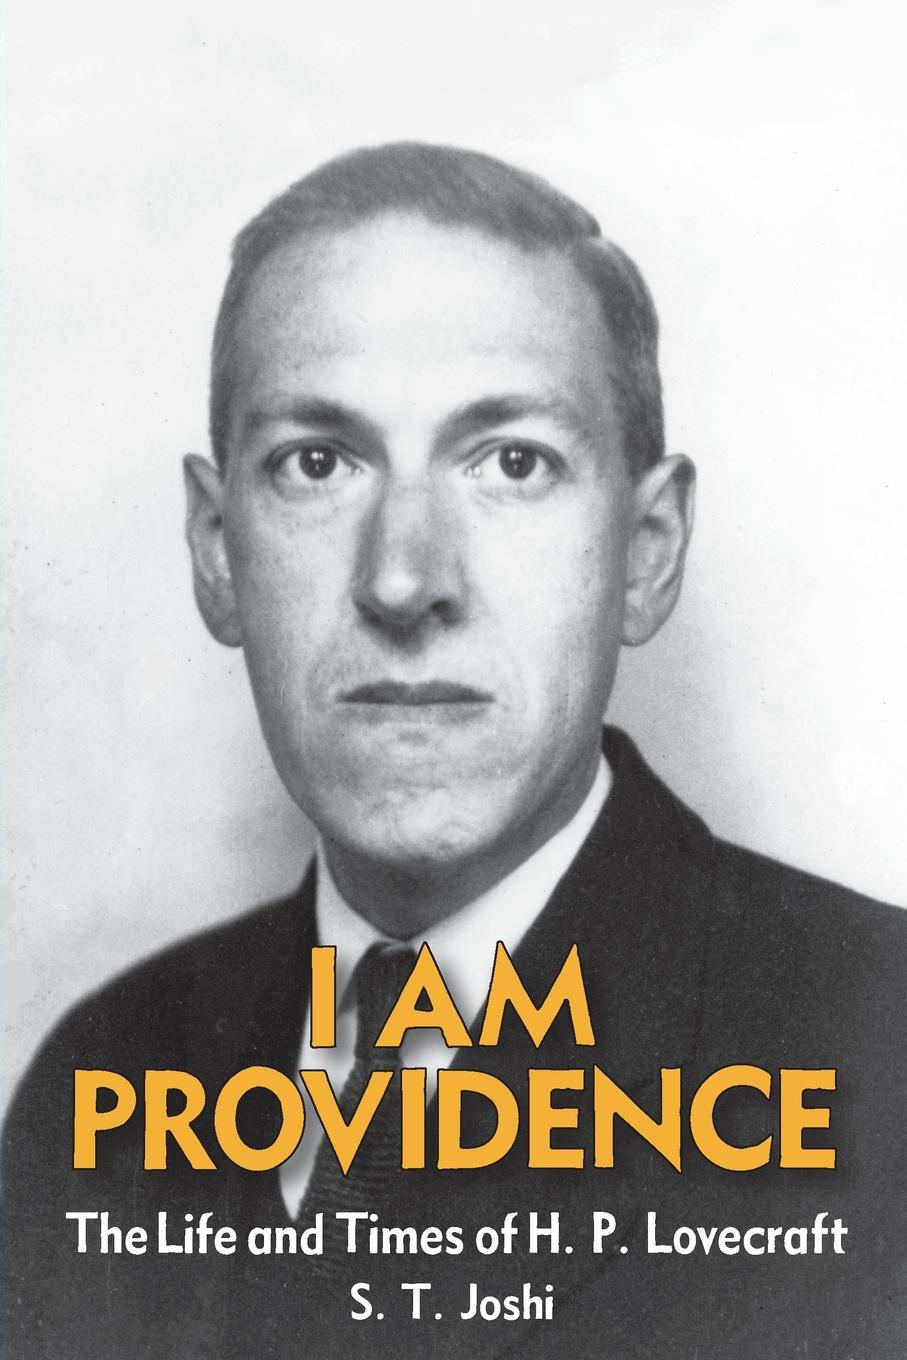 лучшая цена S. T. Joshi I Am Providence. The Life and Times of H. P. Lovecraft, Volume 2